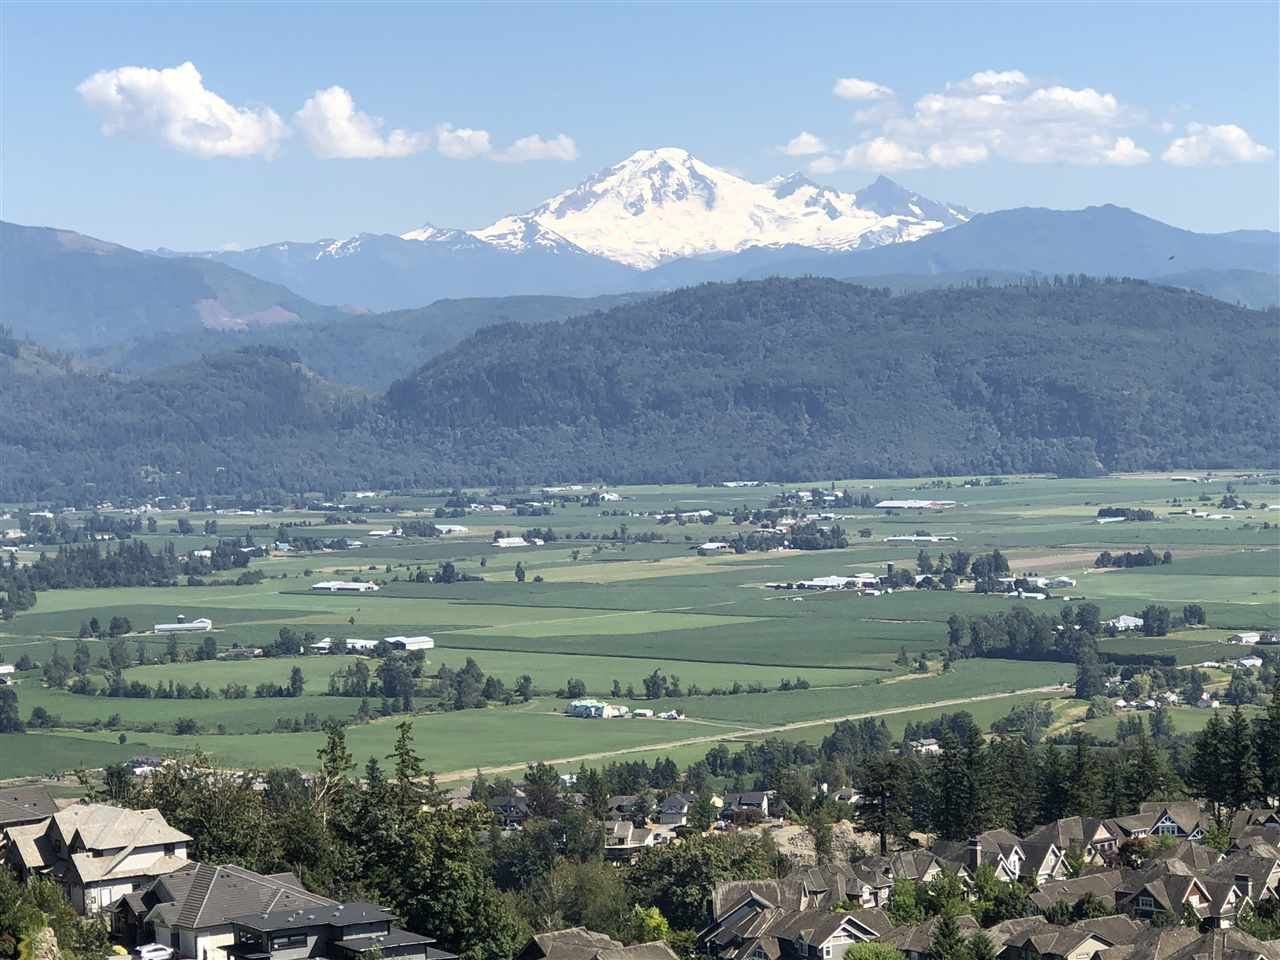 """Main Photo: 2776 MONTANA Place in Abbotsford: Abbotsford East Land for sale in """"Eagle Mountain"""" : MLS®# R2463155"""